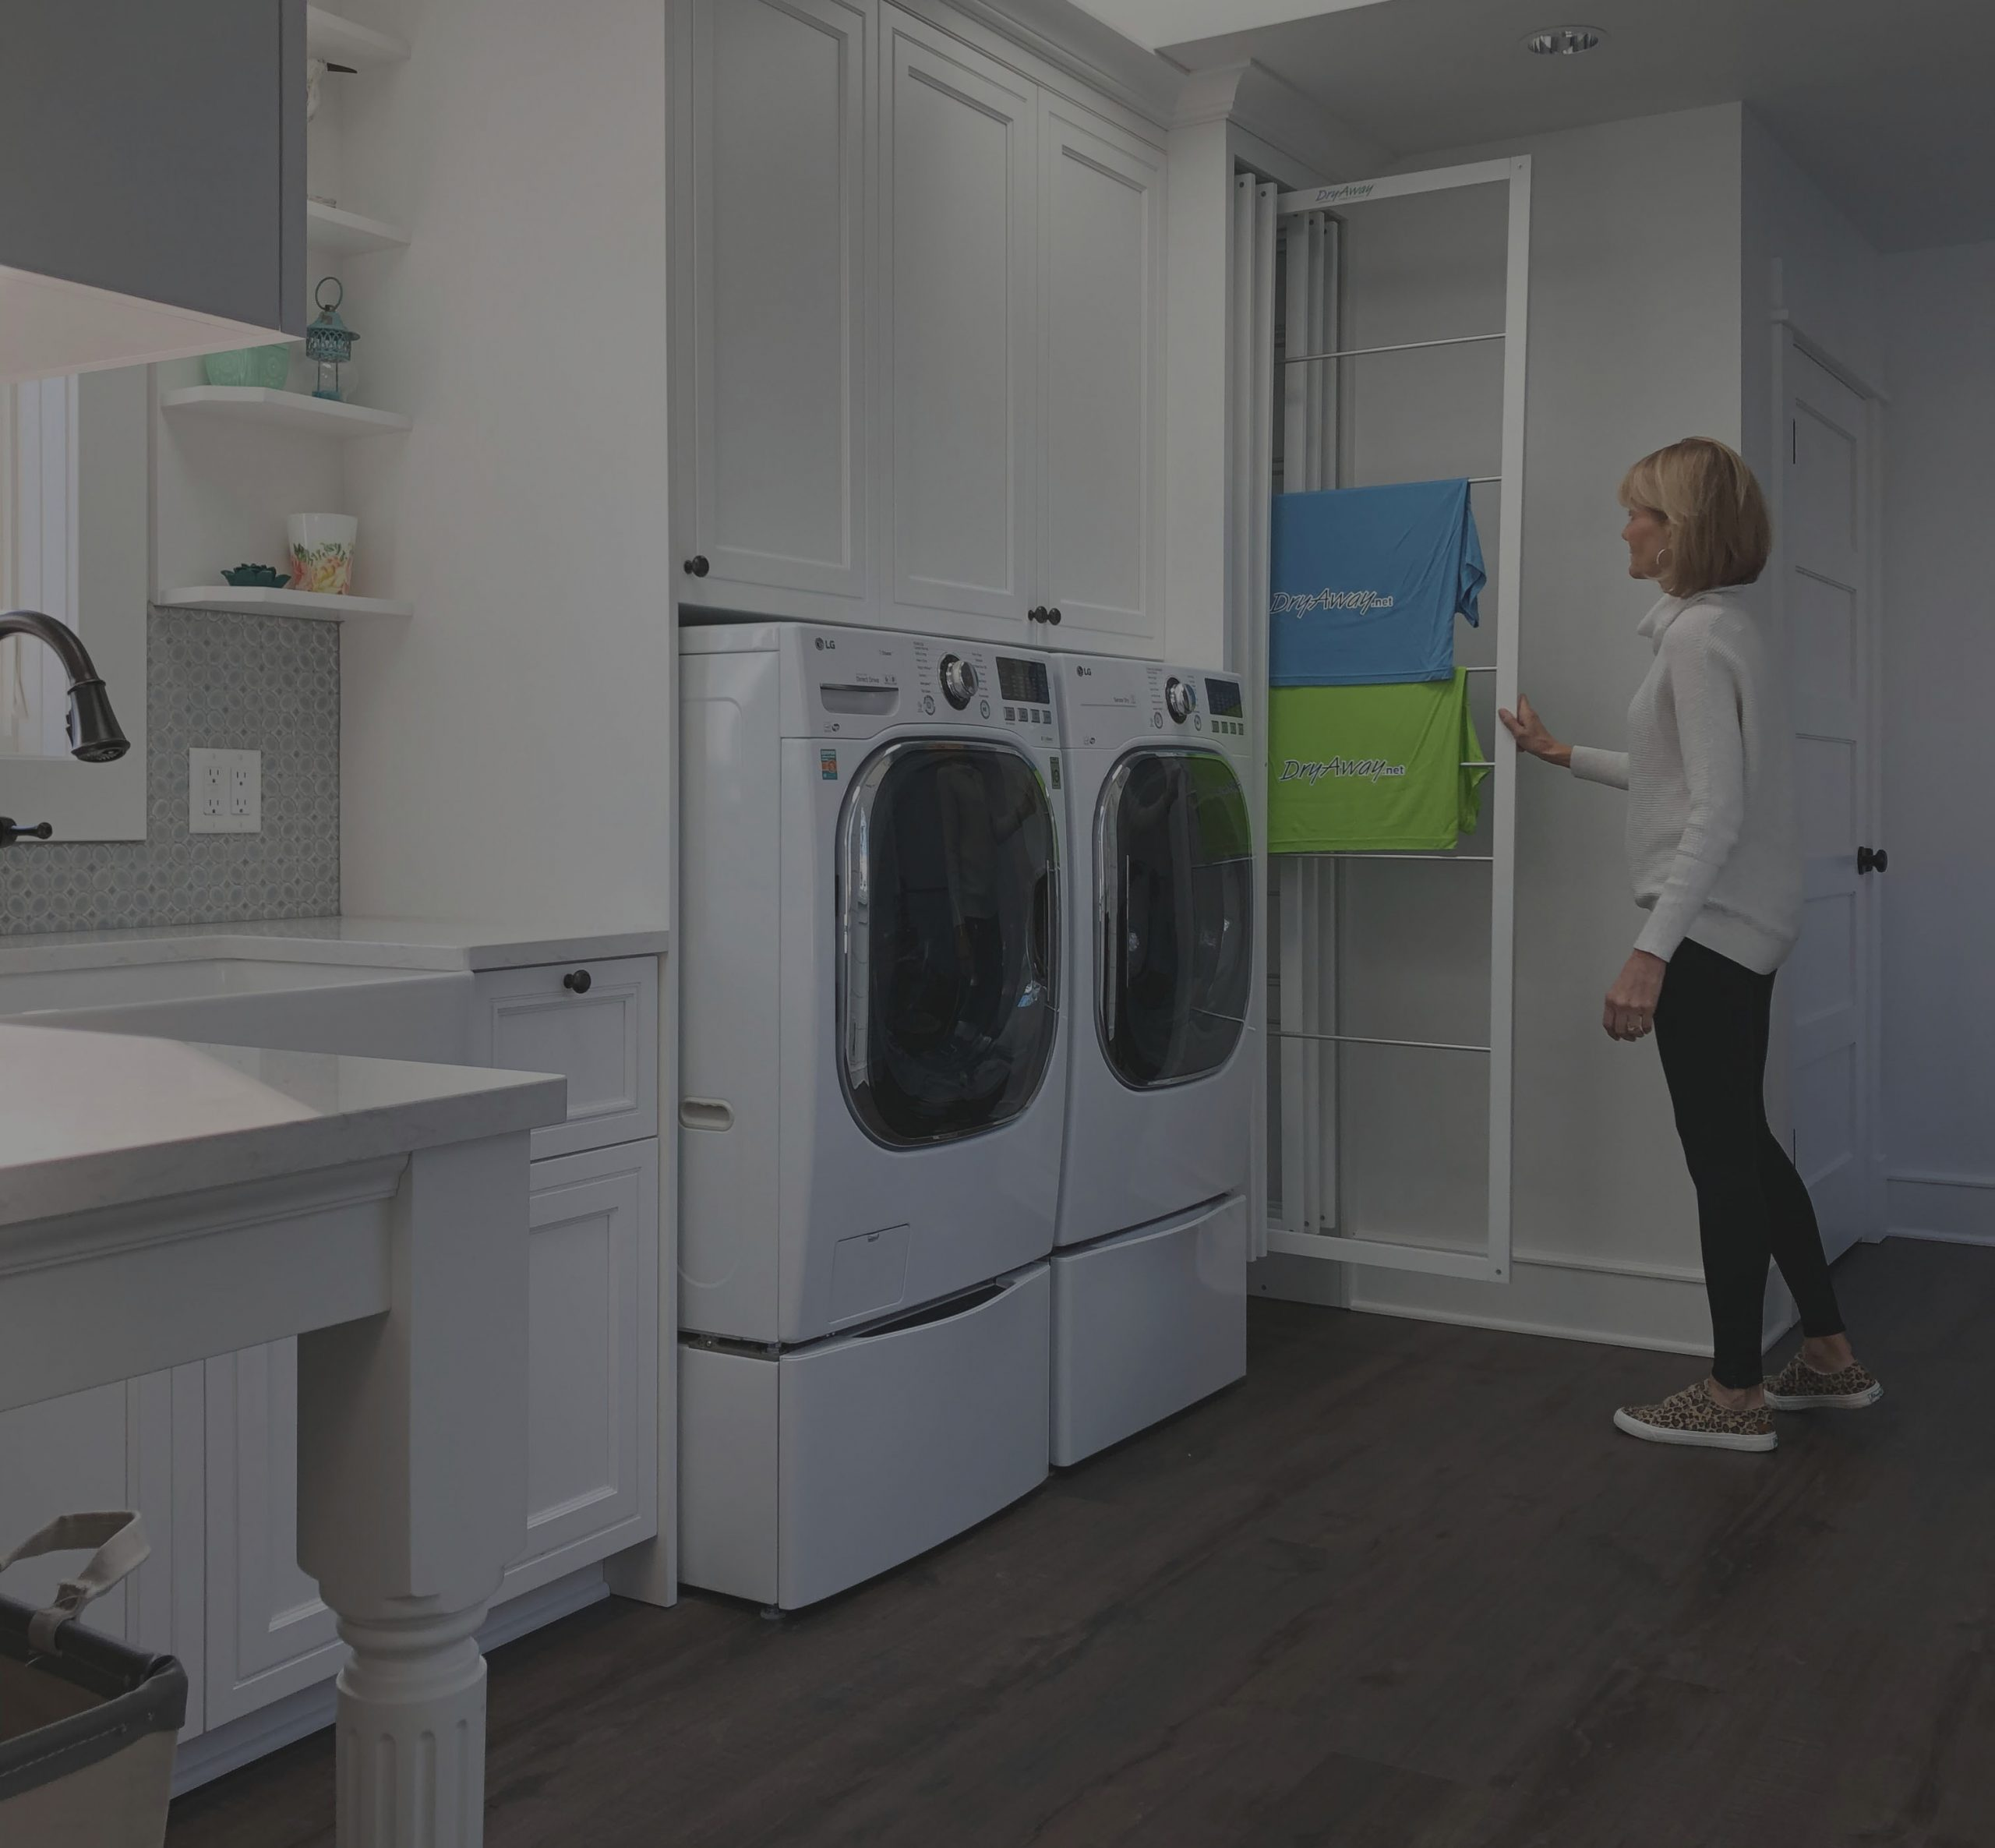 THE ECO-FRIENDLY LAUNDRY DRYING SYSTEM